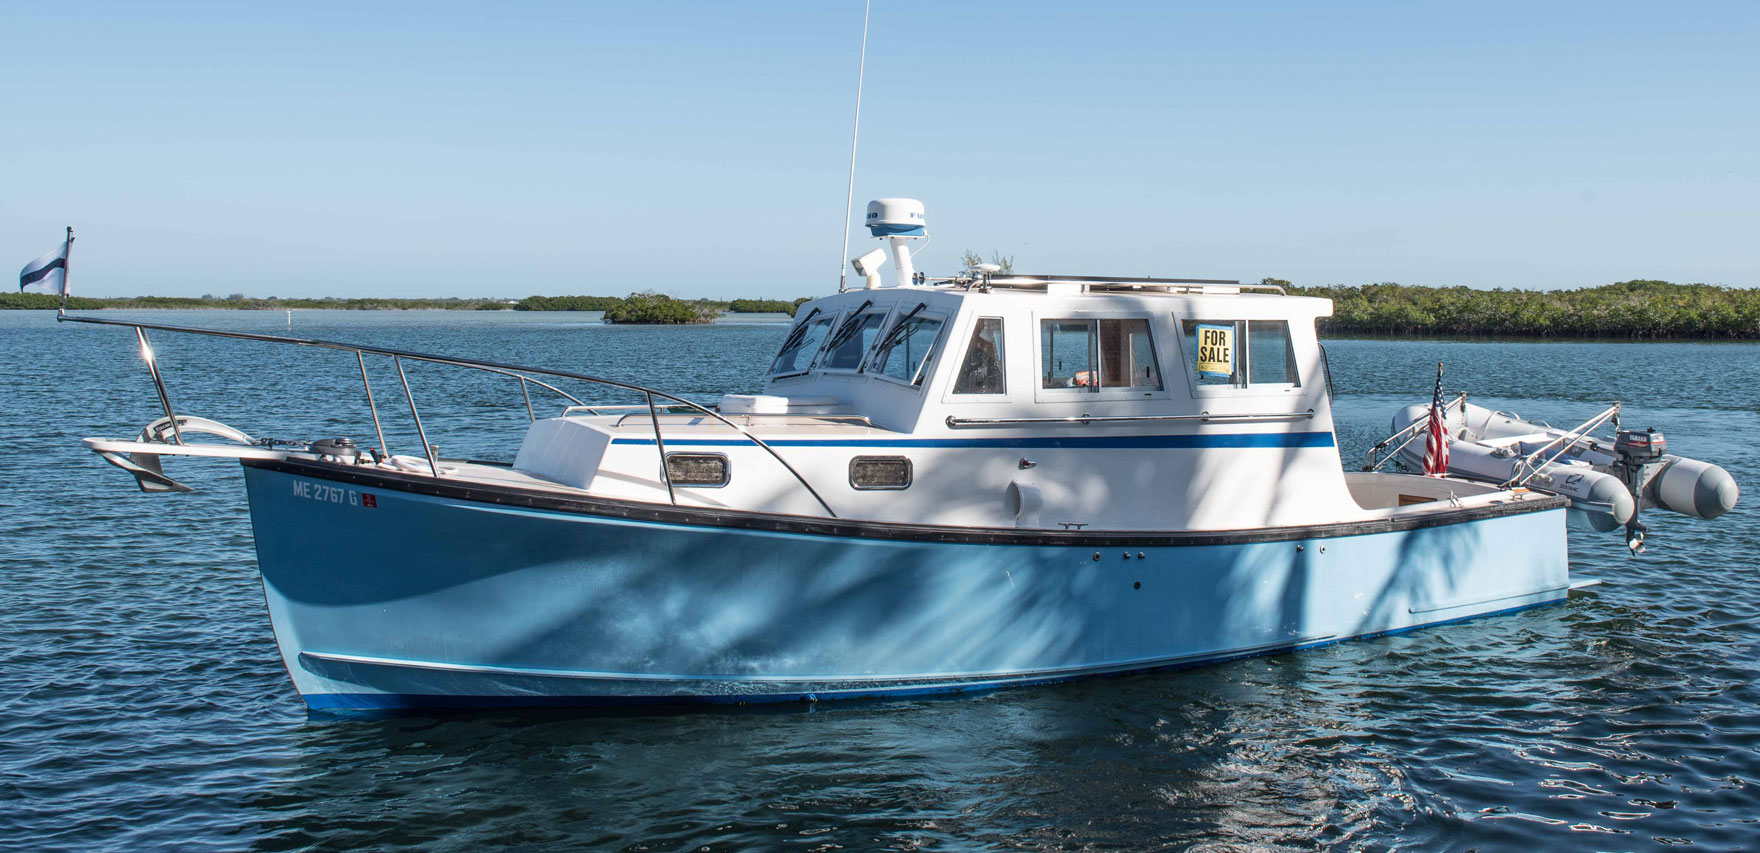 Ellis Boat For Sale: Ellis 28 Extended Top Cruiser